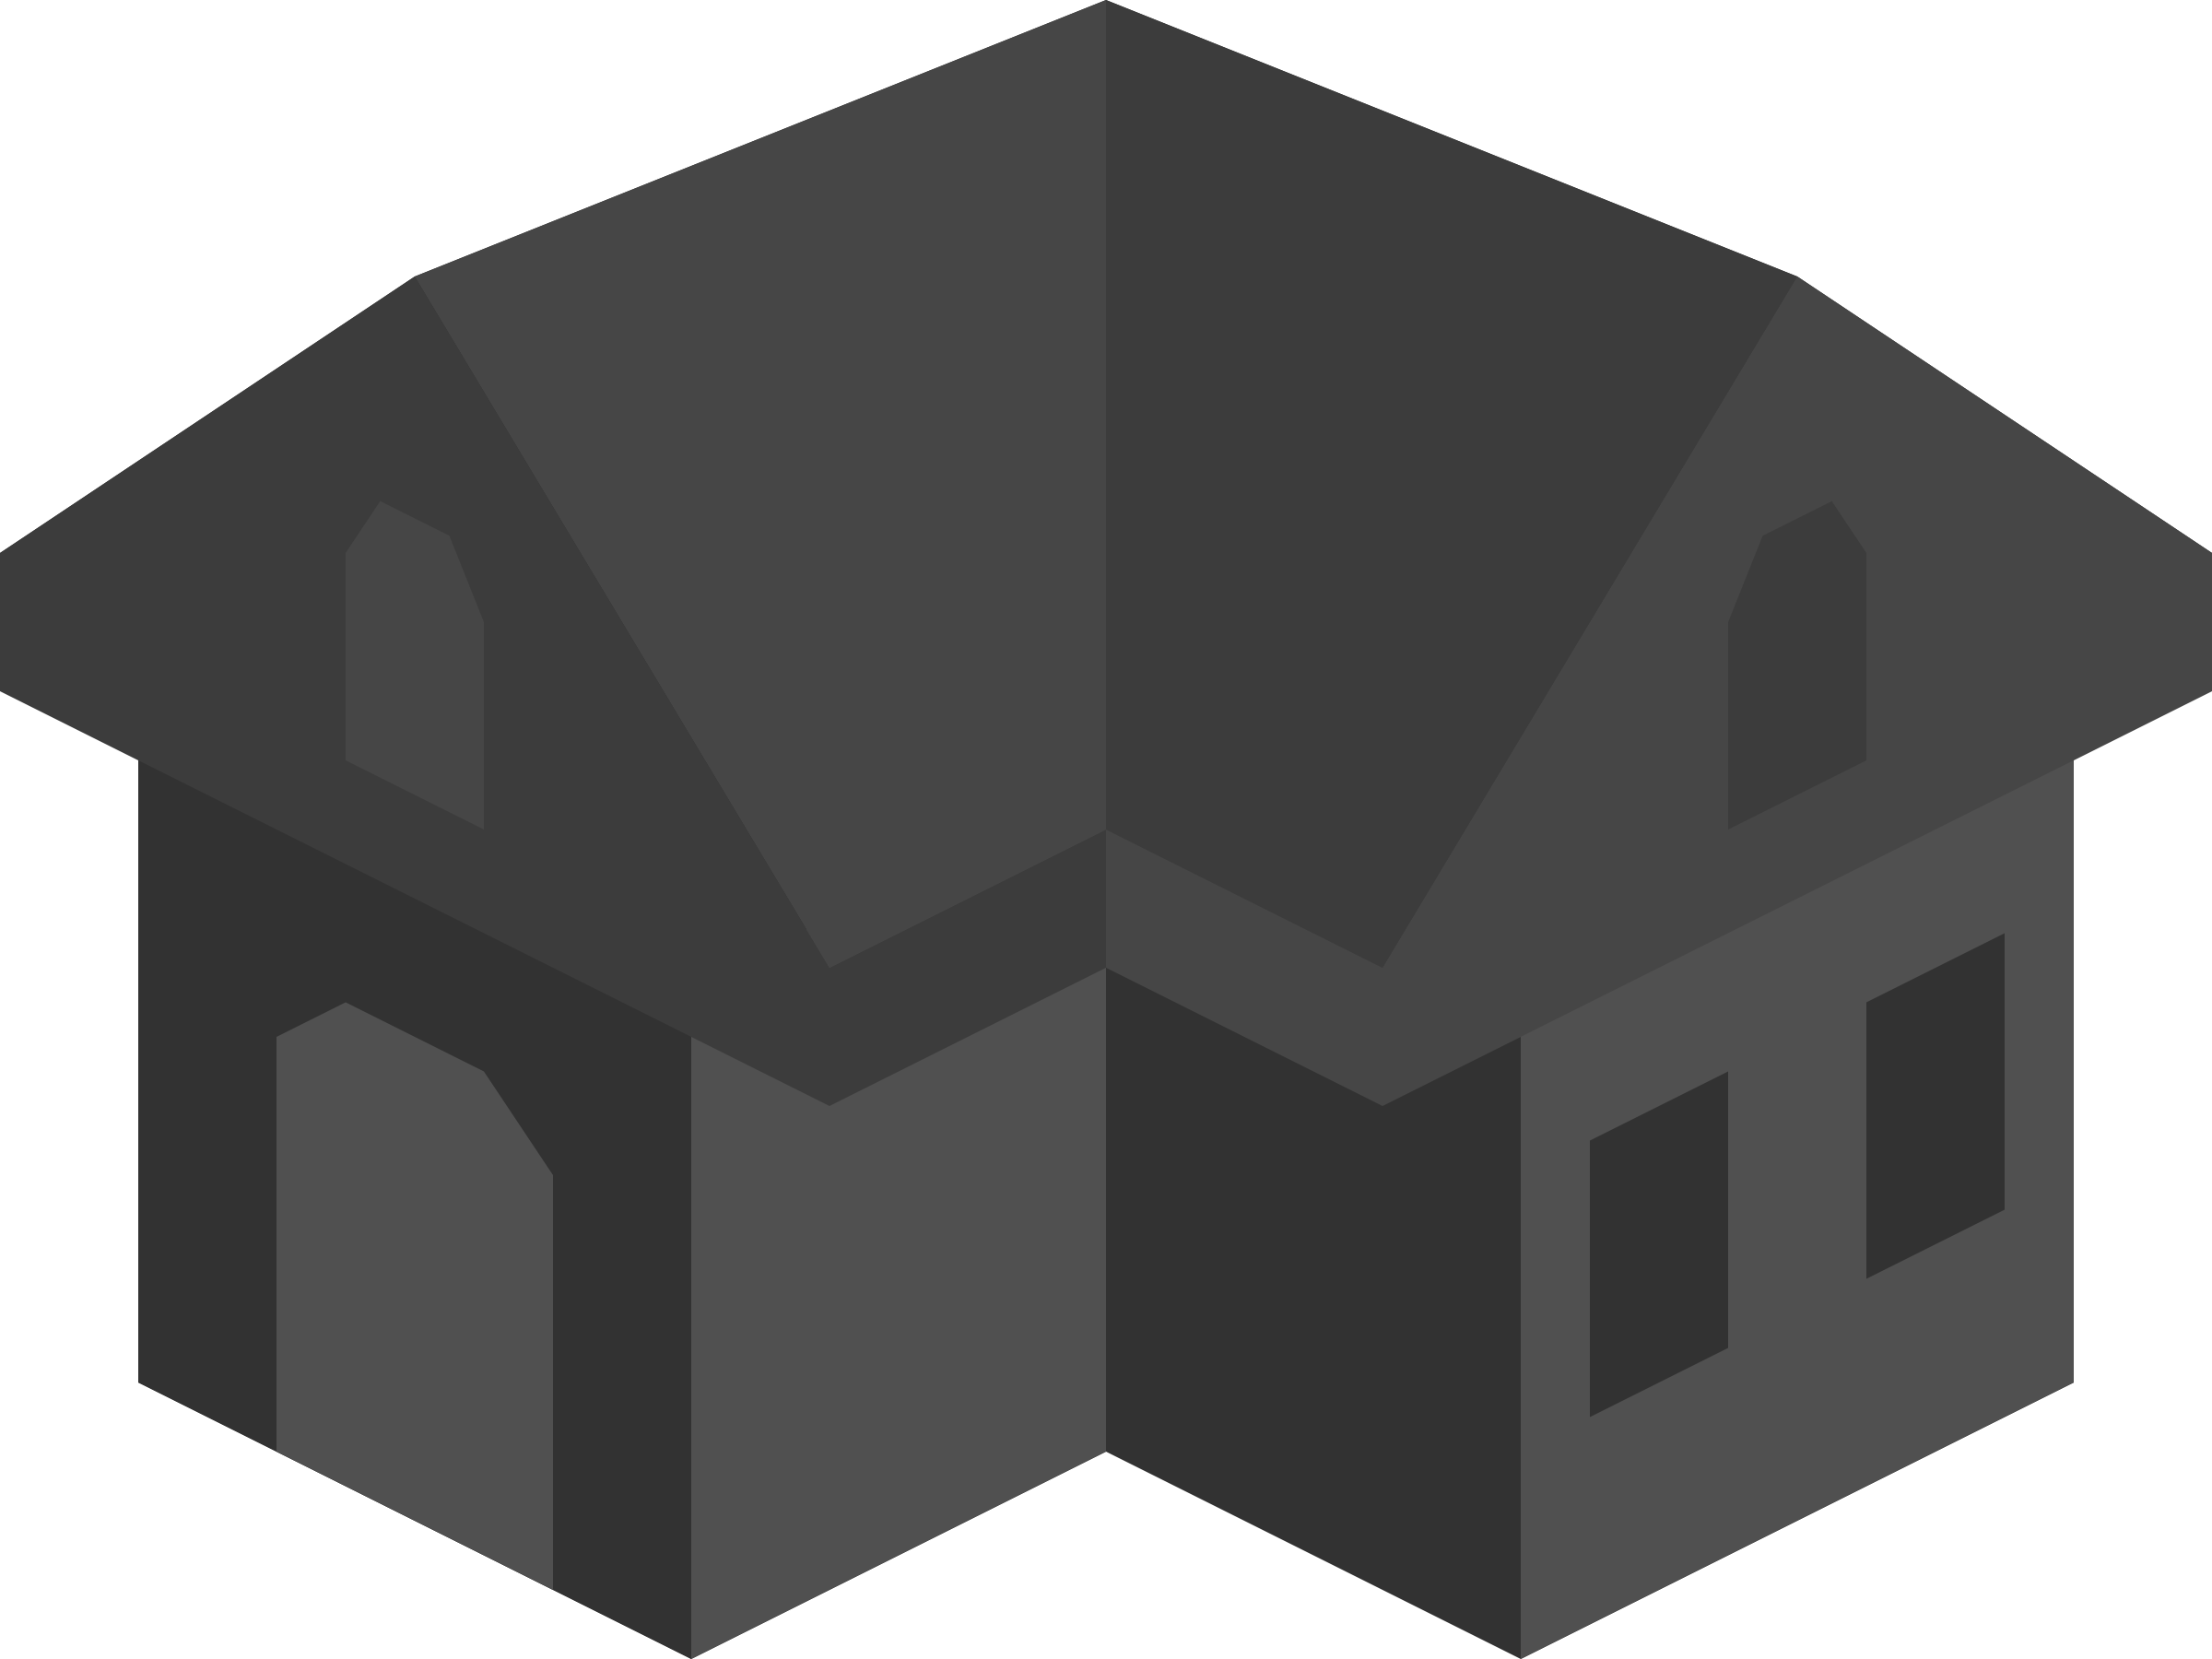 Placeholder Isometric Building Icon Dark by qubodup